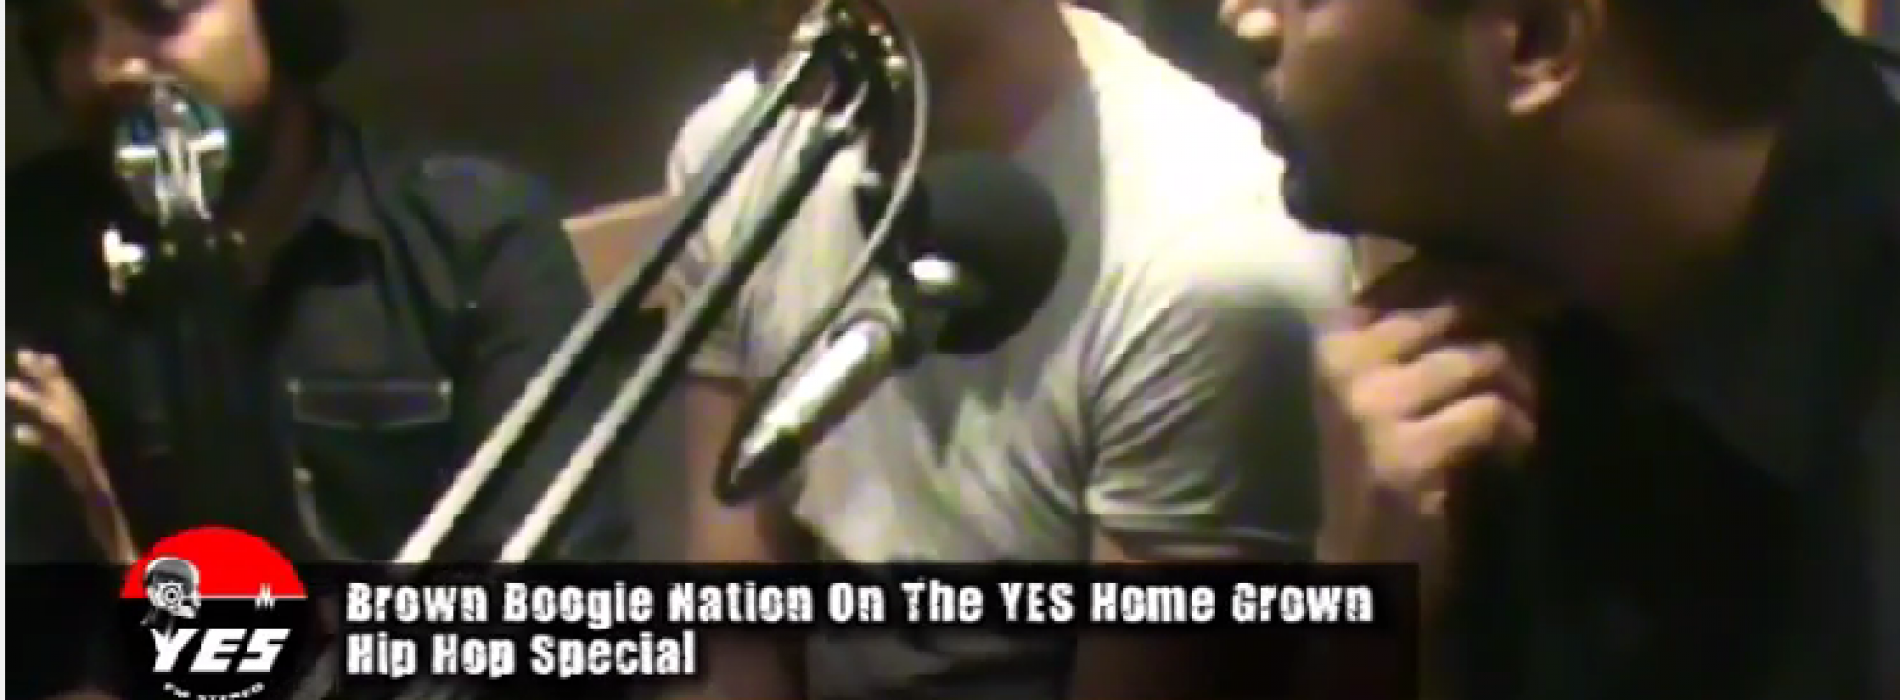 Brown Boogie Nation On The YES Home Grown Hip Hop Special (video)